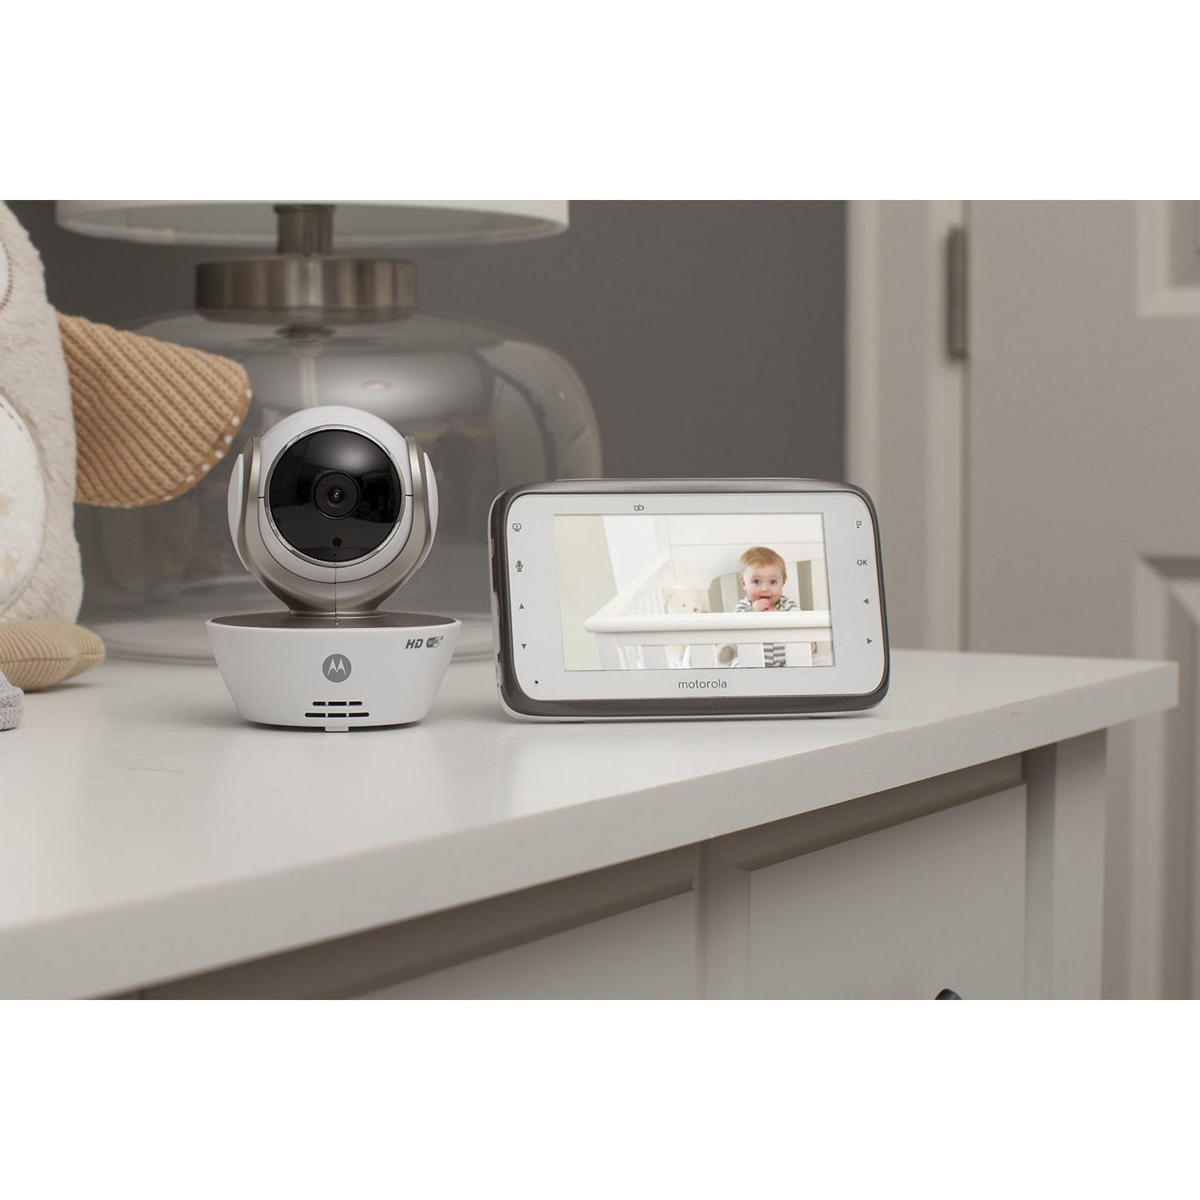 motorola mbp854 connect digital video baby monitor with infrared night vision. Black Bedroom Furniture Sets. Home Design Ideas